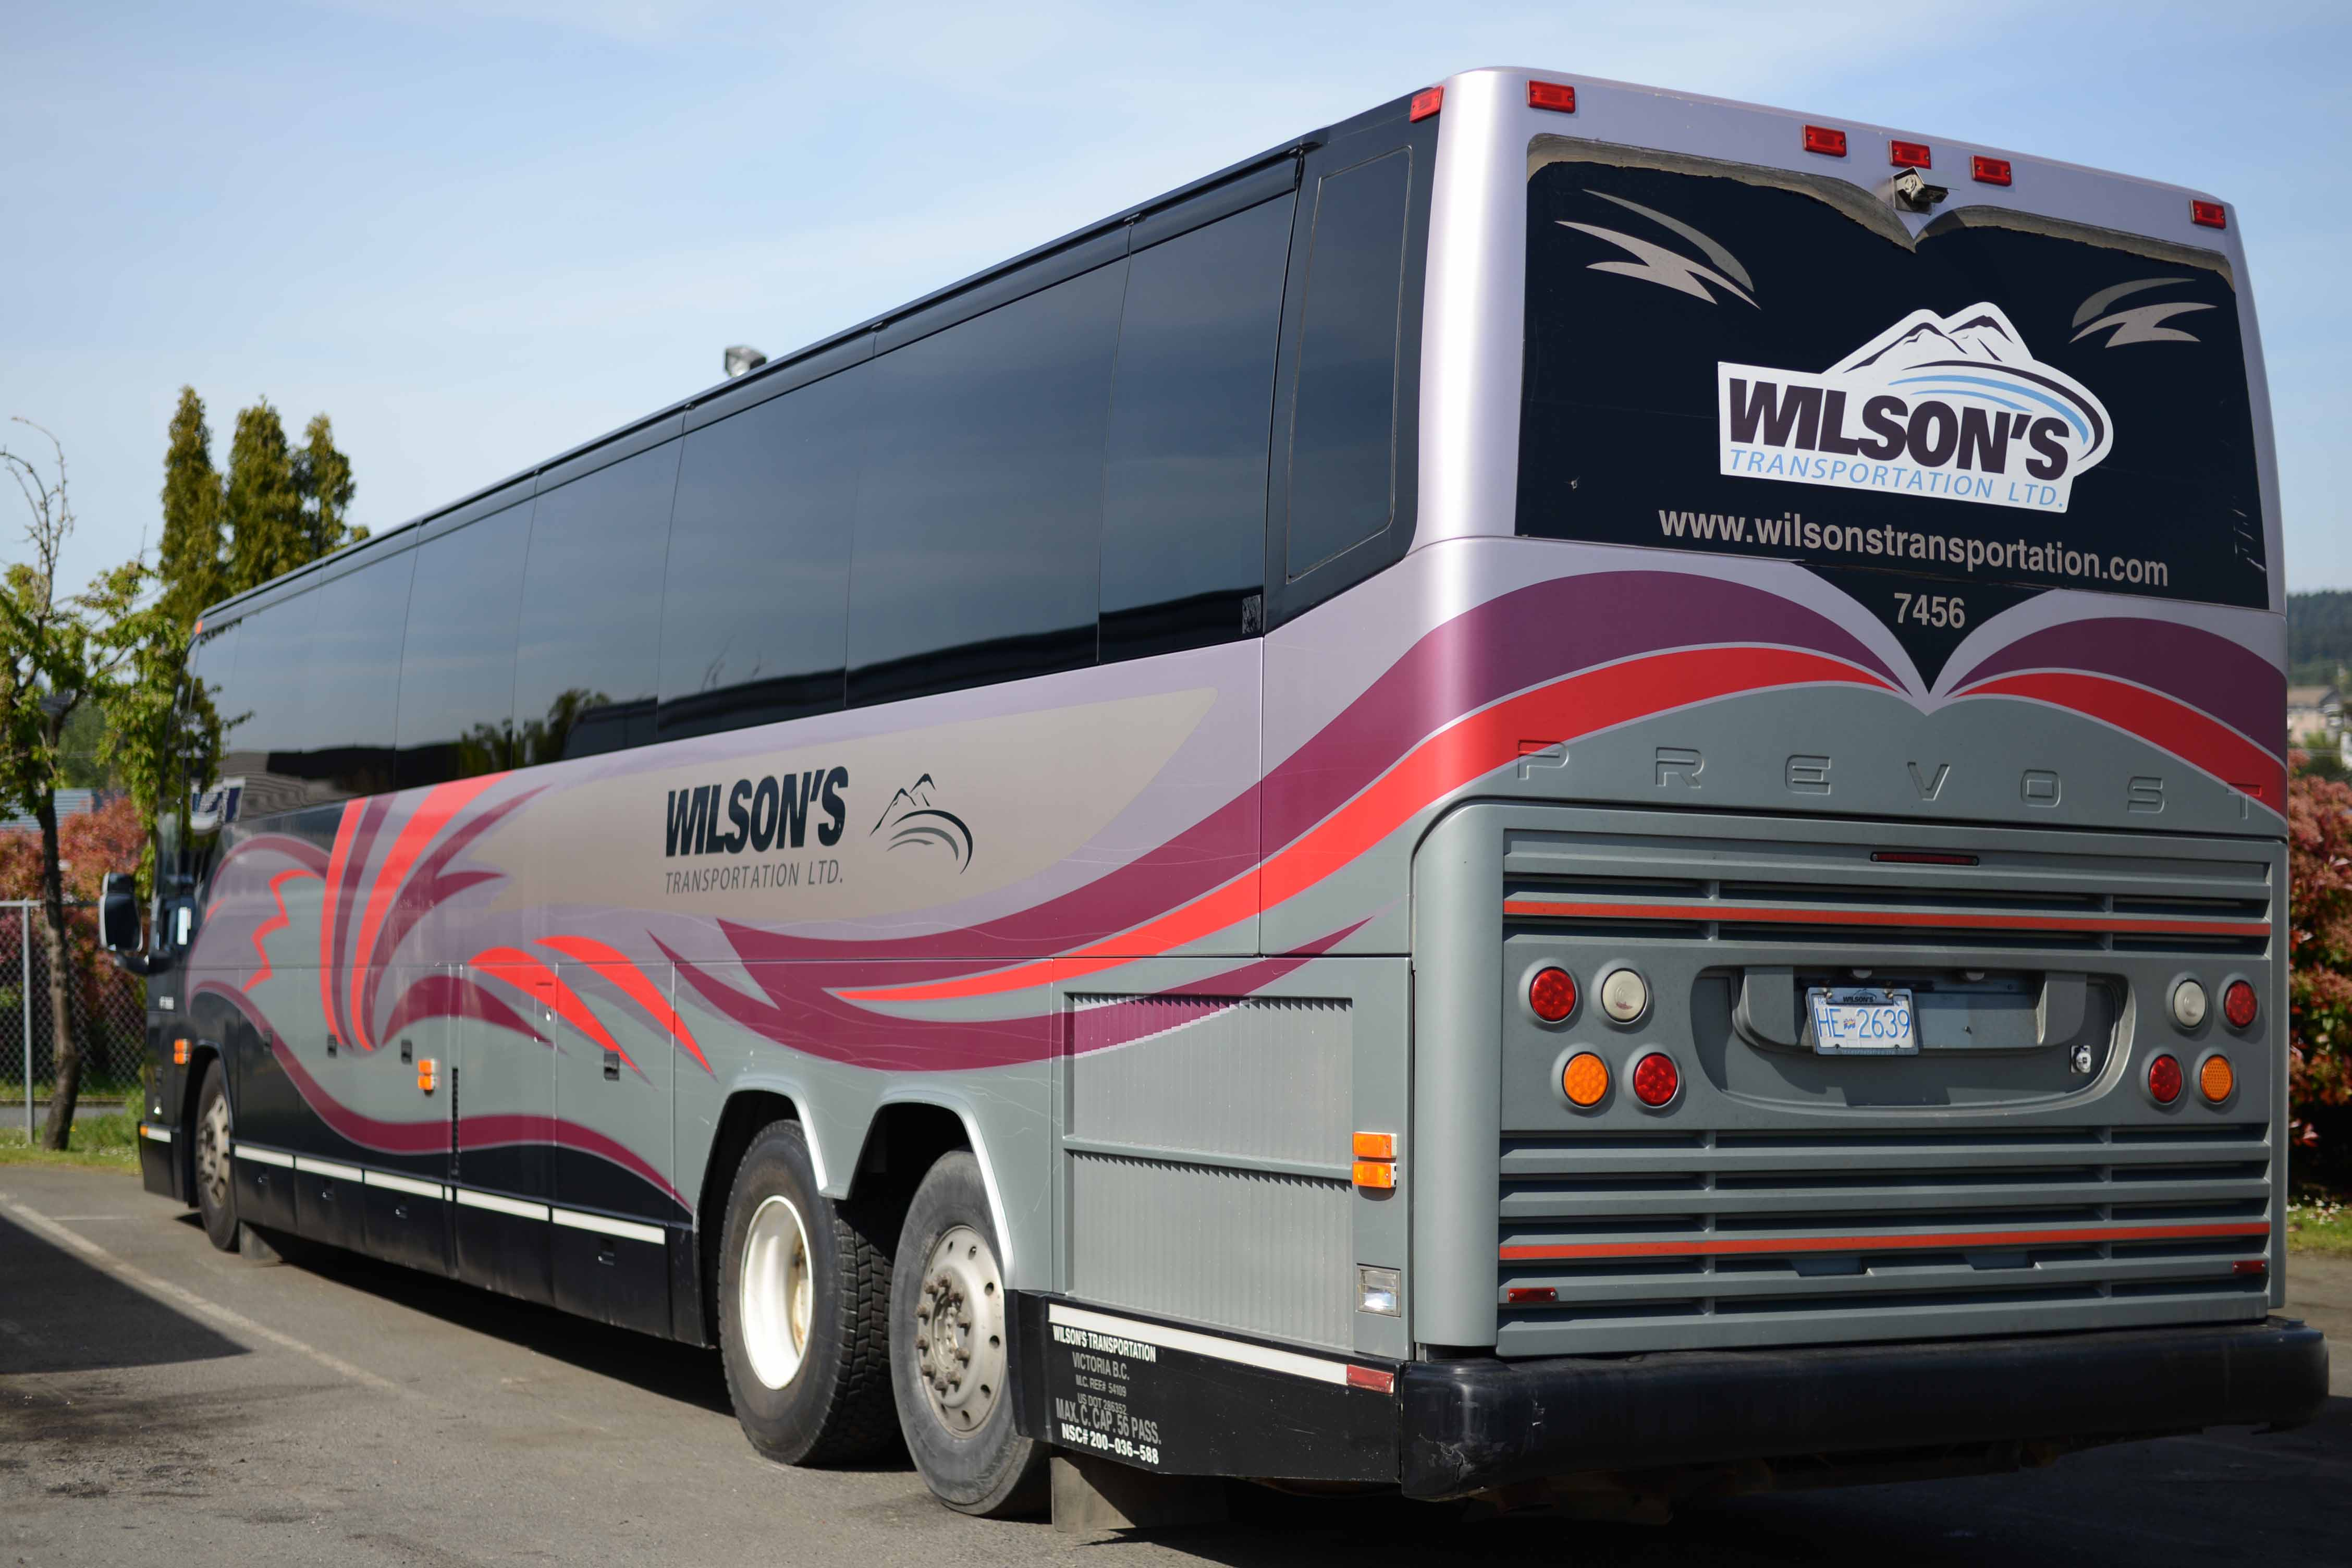 Wilsons - Images - LgCoach_6175